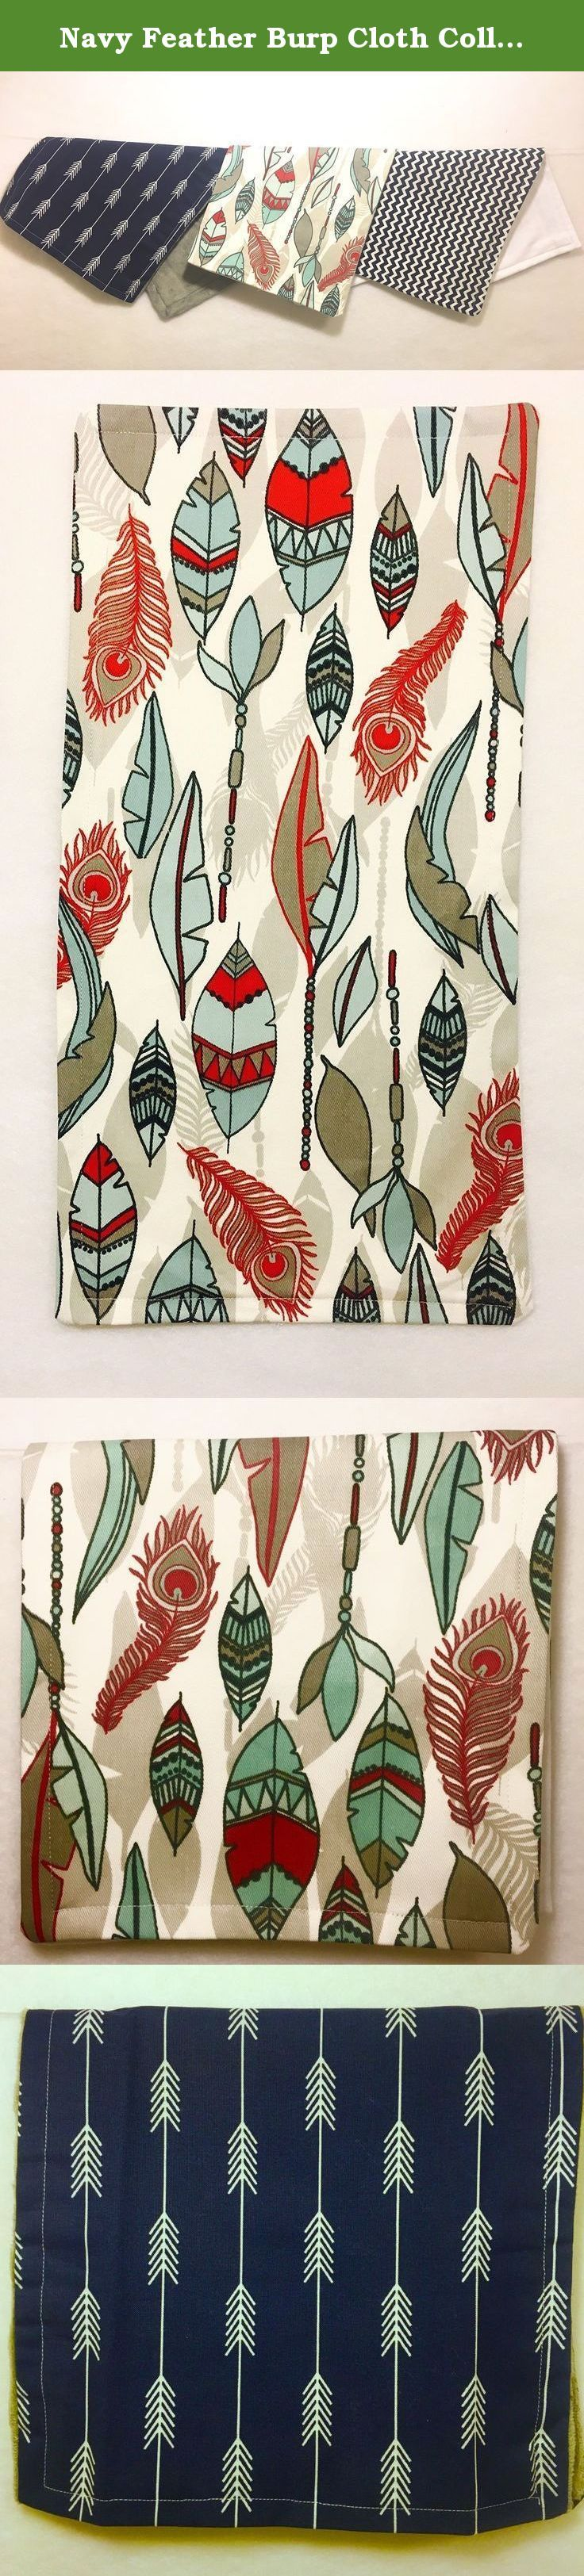 """Navy Feather Burp Cloth Collection. Enjoy our """"Best seller"""" Navy Feather Collection. Feathers, arrows, and chevron prints of the highest quality and 100% organic cotton backing for sensitive skin will surely strike up conversation at your next """"play date."""" Burp cloths measure 8.5 x 16 inches. All of our collections come gift wrapped and sealed with the Tom & Jane Designs label to insure satisfaction. Proudly made in the USA. Machine wash/tumble dry. Monogram available upon request."""